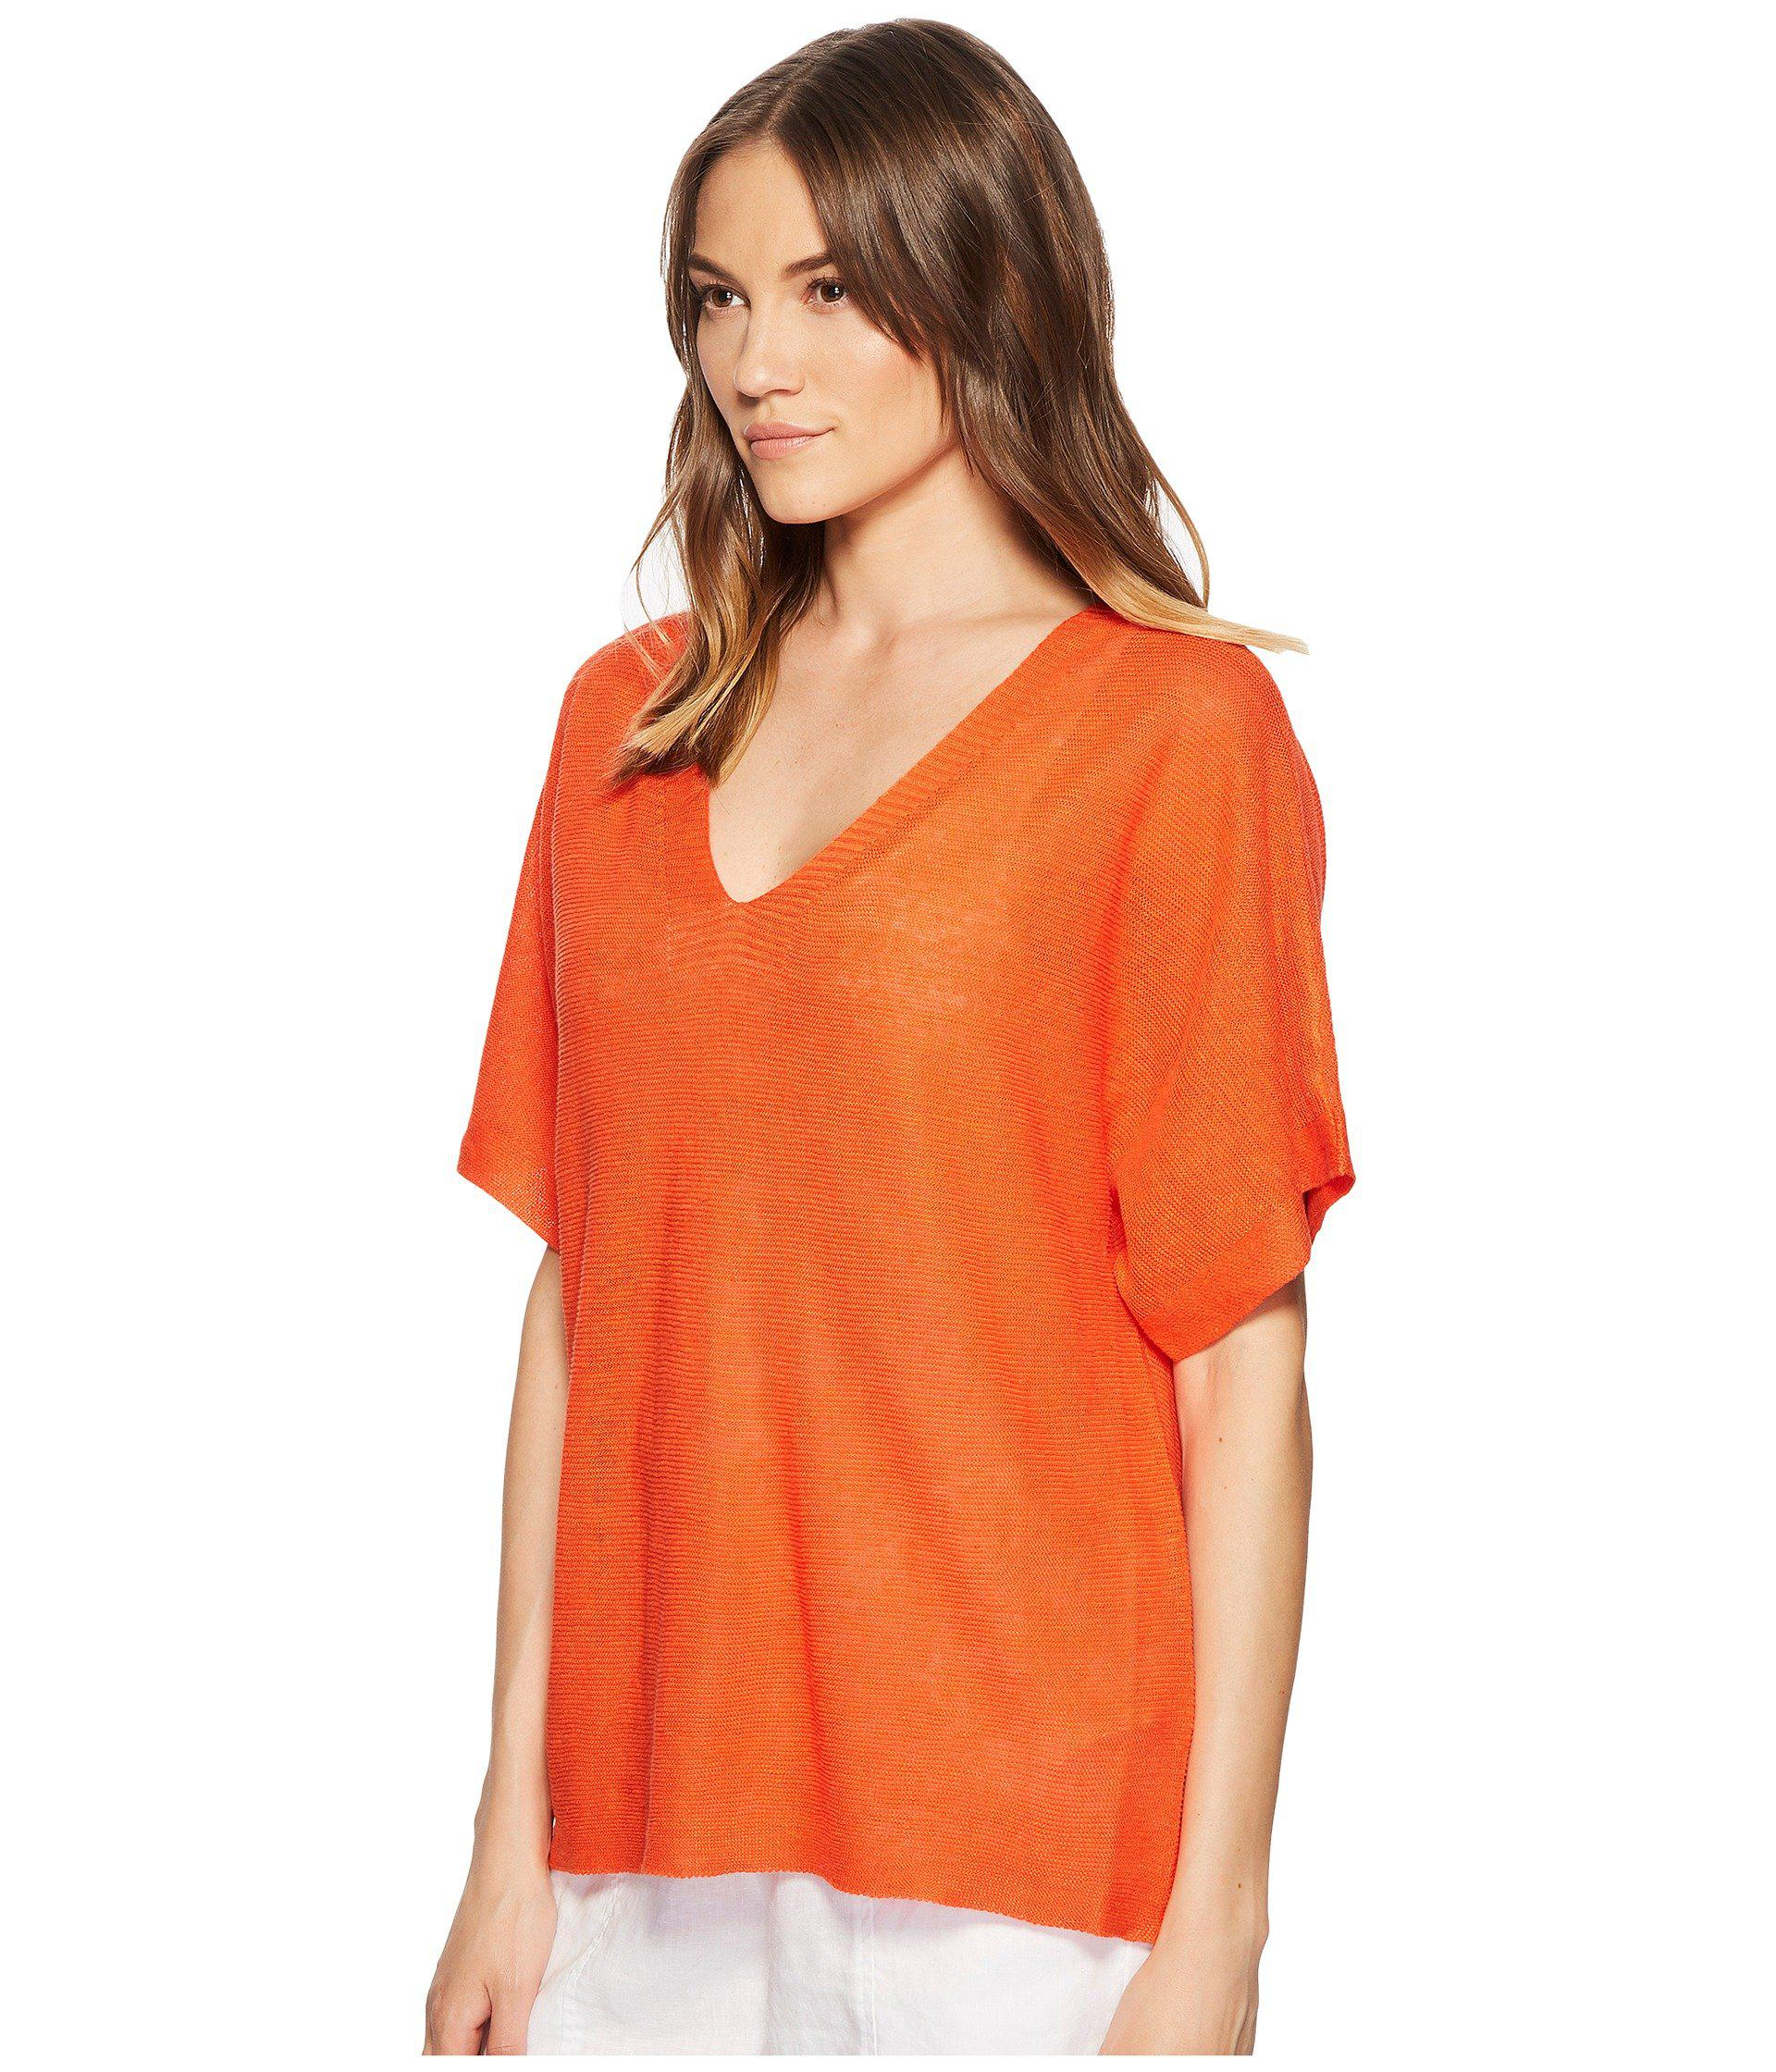 1bddef86b90 Lyst - Eileen Fisher Deep V-neck Top in Orange - Save 41%